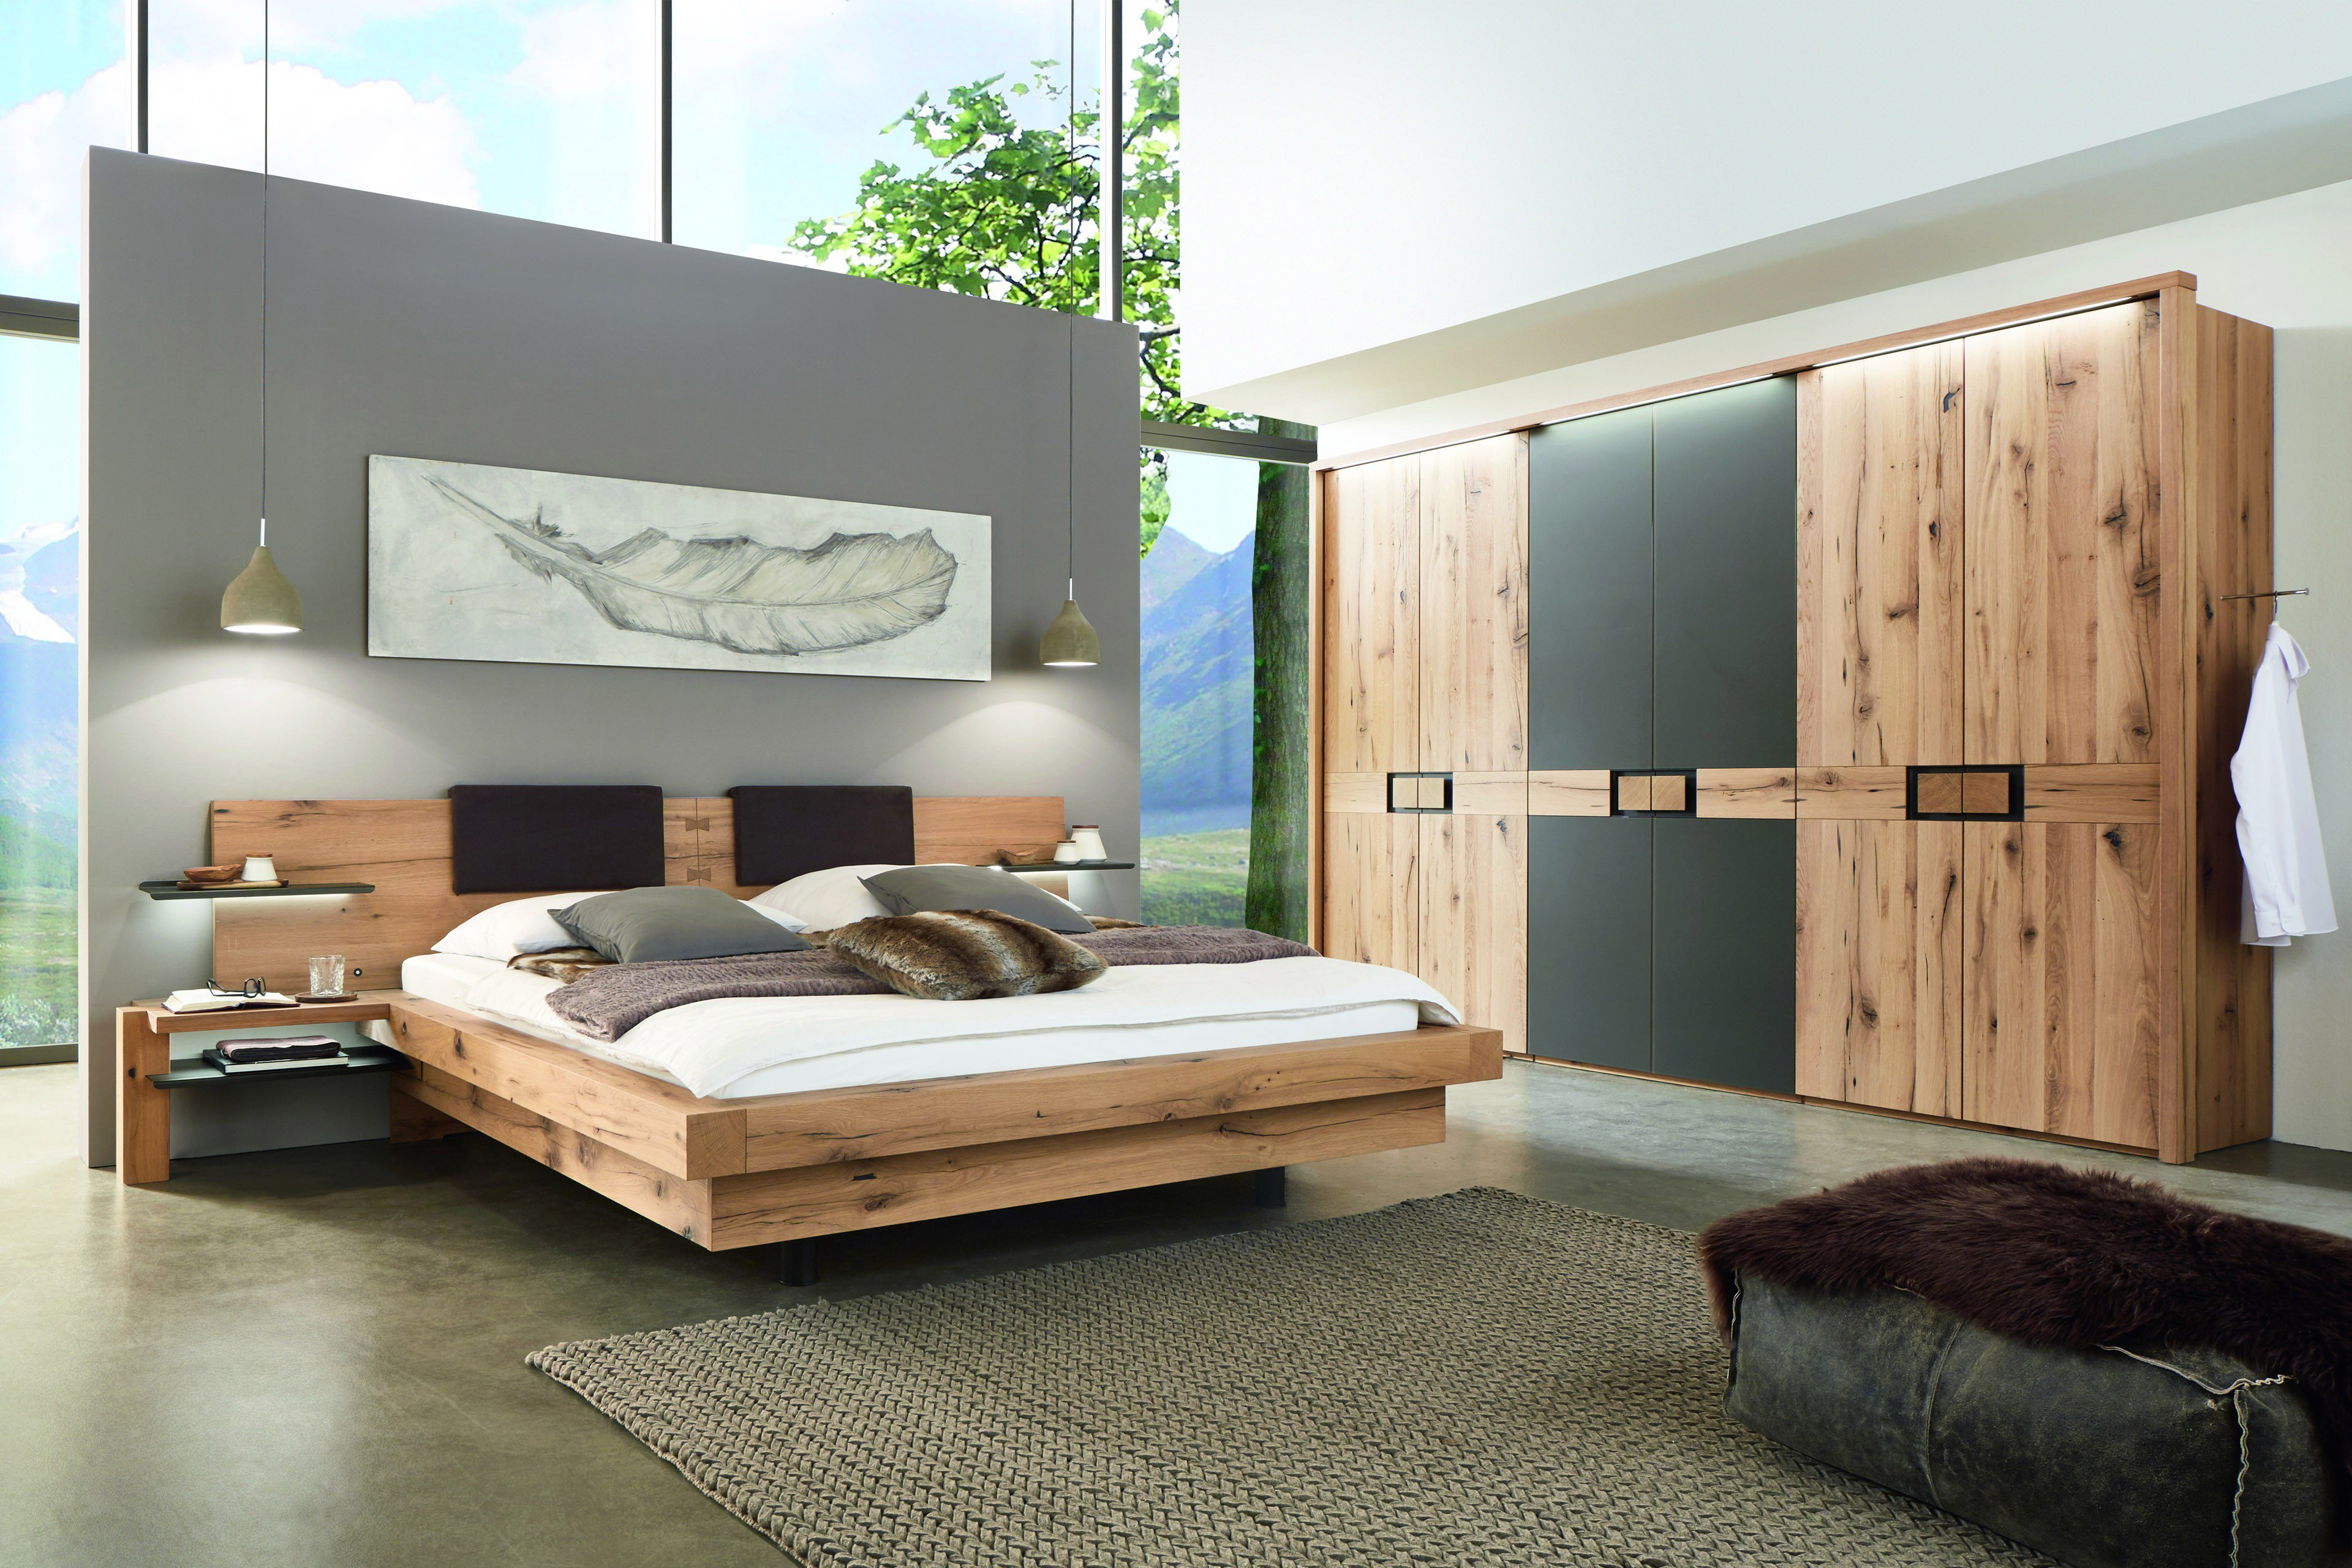 w stmann wsm 2100 schlafzimmer eiche altholz m bel letz ihr online shop. Black Bedroom Furniture Sets. Home Design Ideas